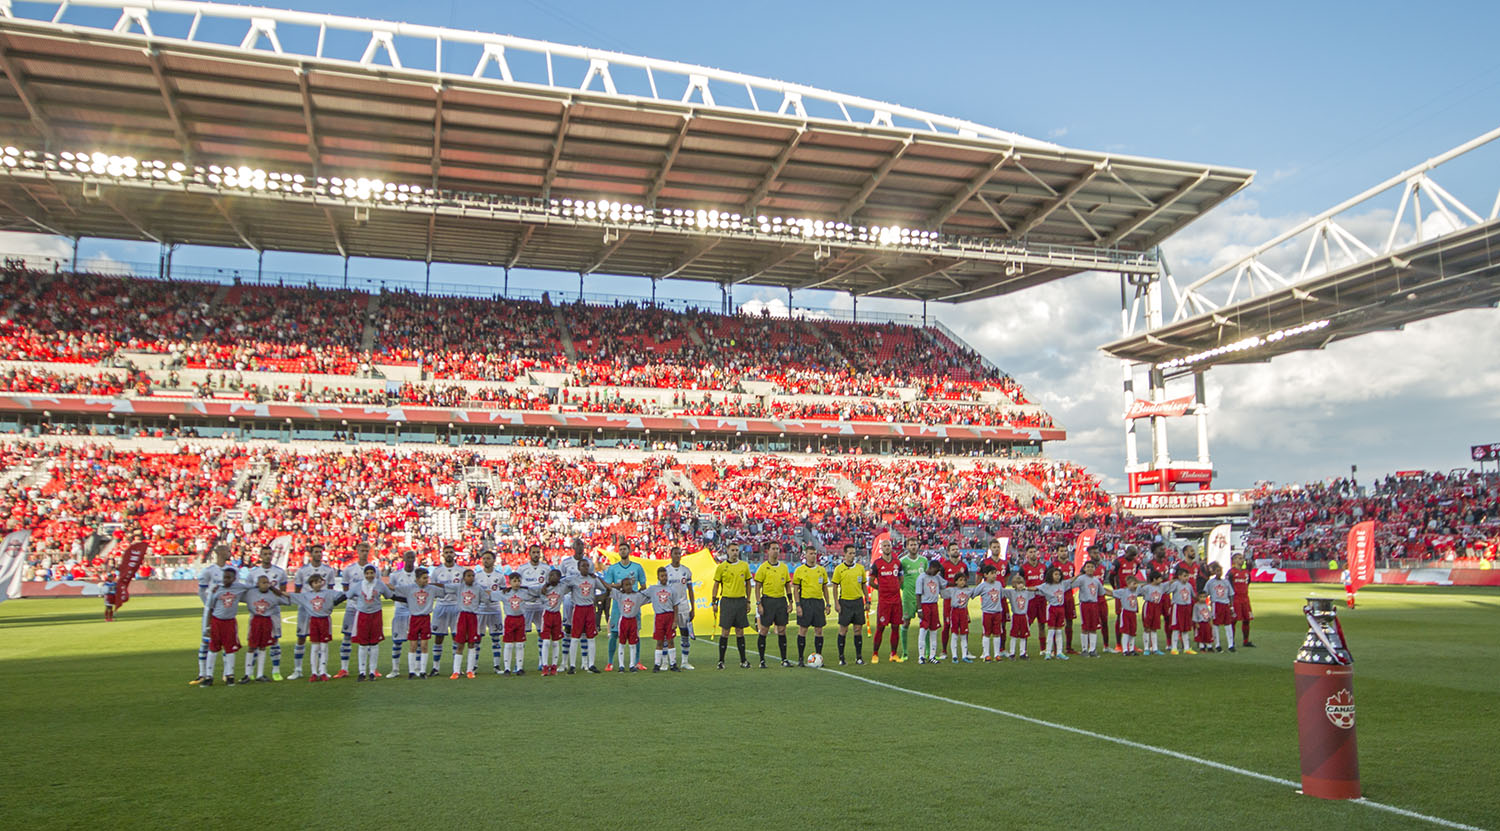 The national anthem being played with the Voyageurs Cup in the foreground in 2017 at BMO Field.Image by Dennis Marciniak of denMAR Media.